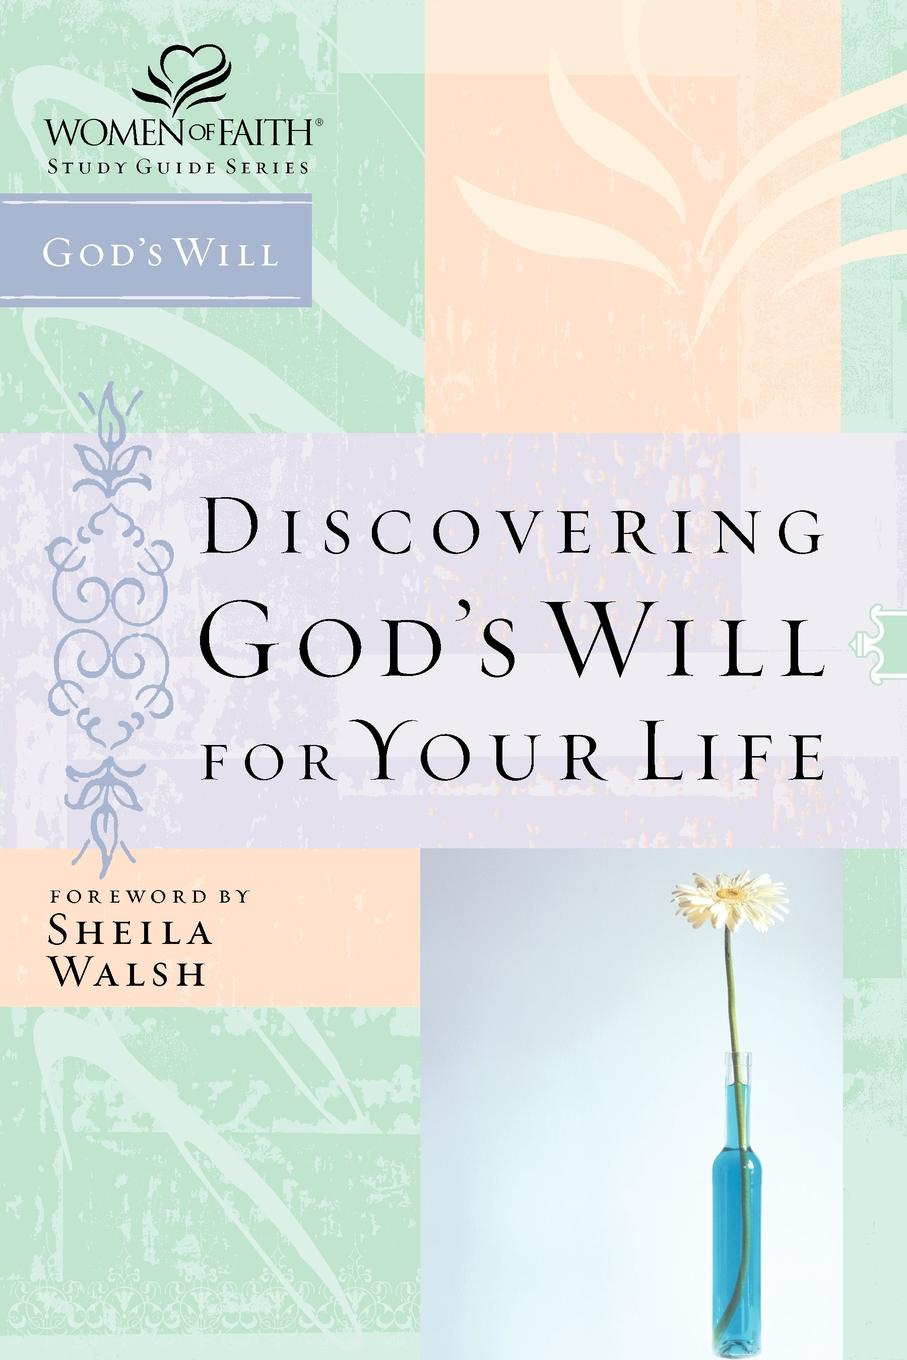 Sheila Walsh, Thomas Nelson Publishers Discovering God's Will for Your Life shadonna walker pearls class discovering god s beauty